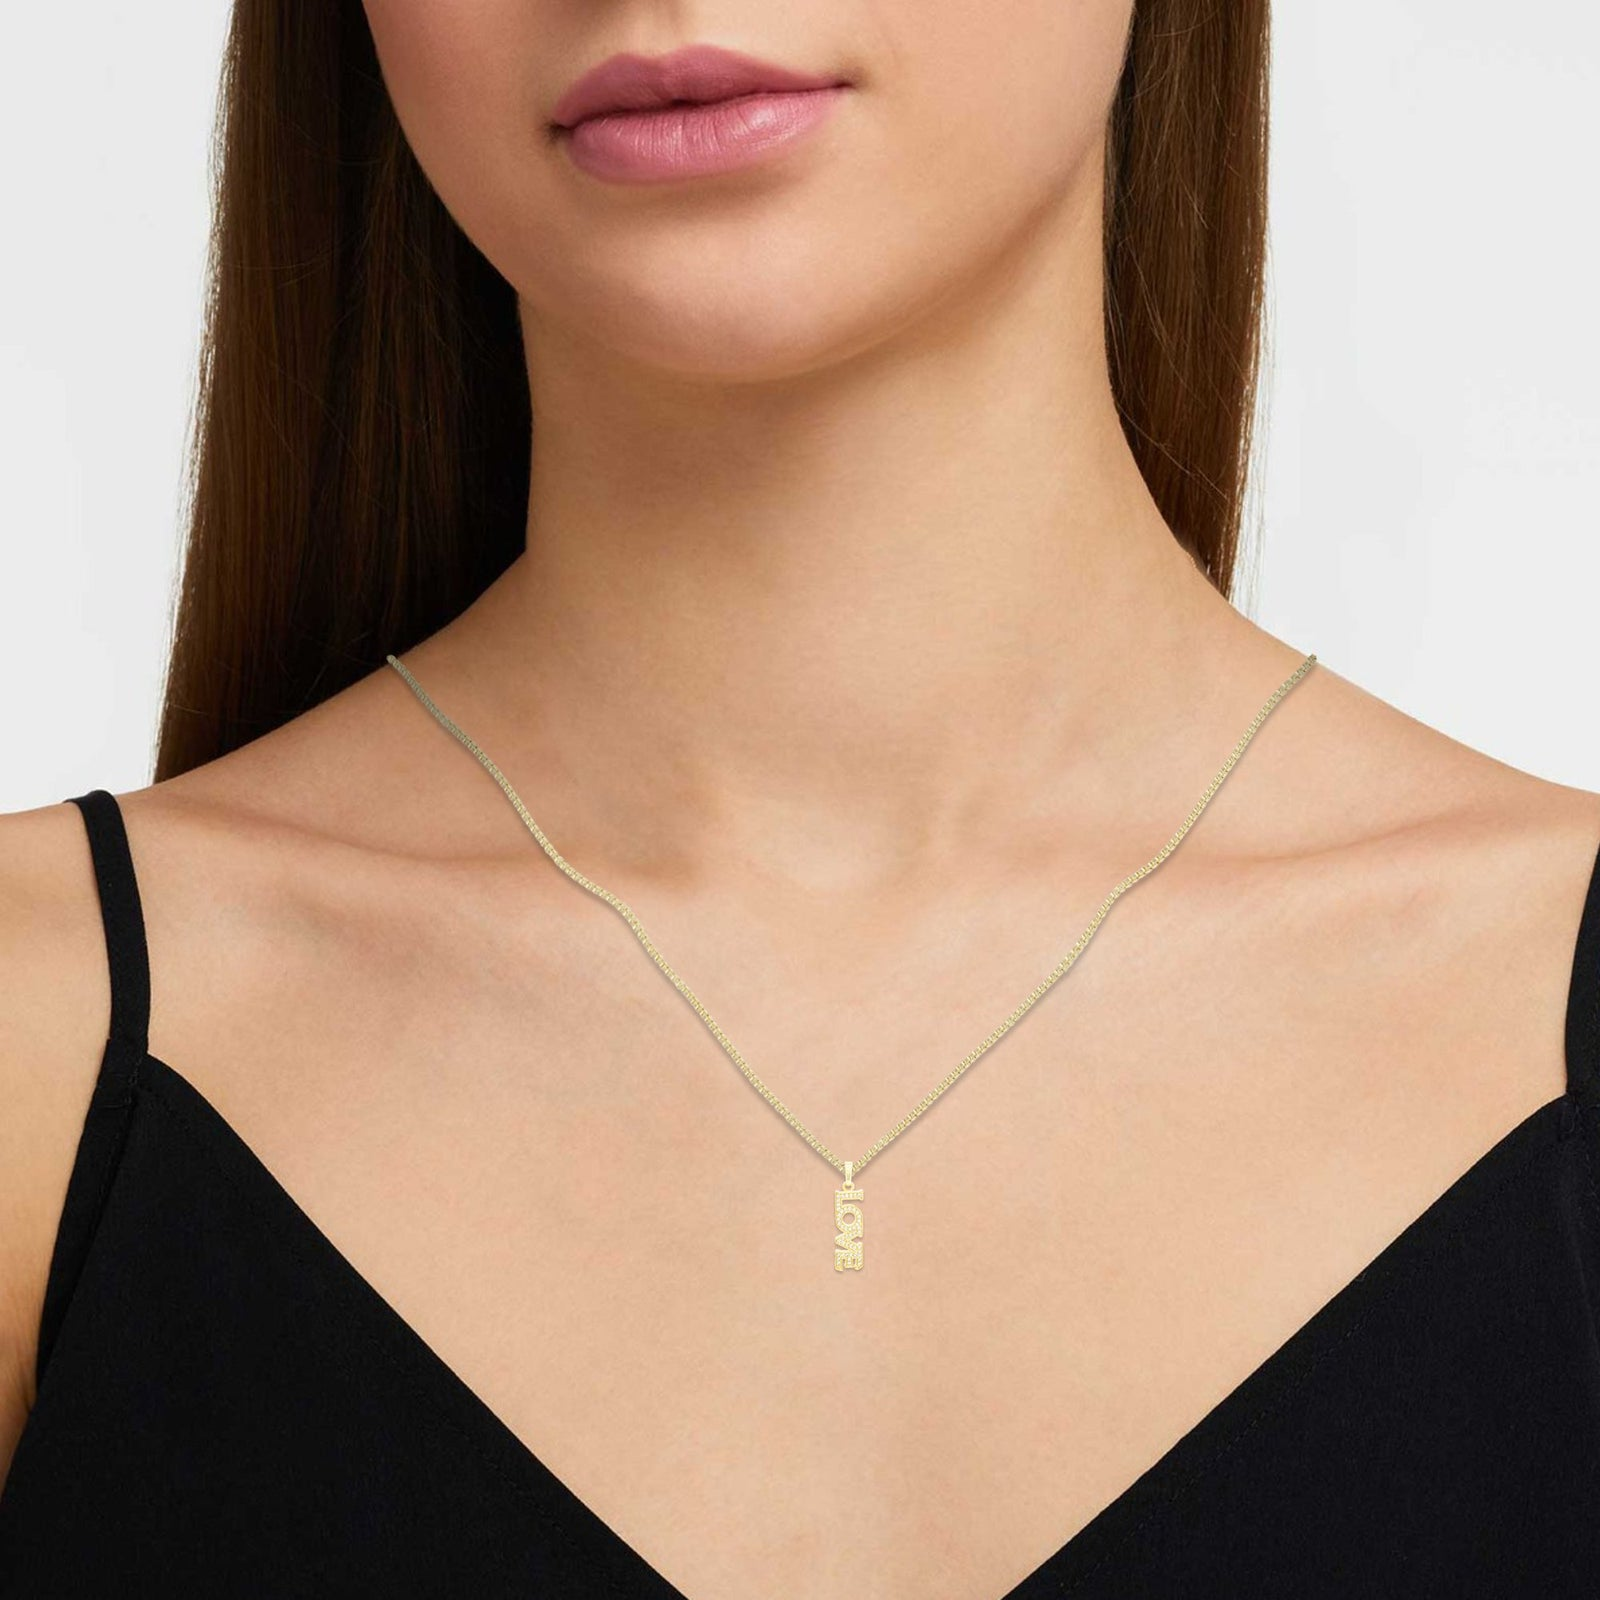 Long Love Cubic Zirconia Pendant With Necklace Set 14K Gold Filled